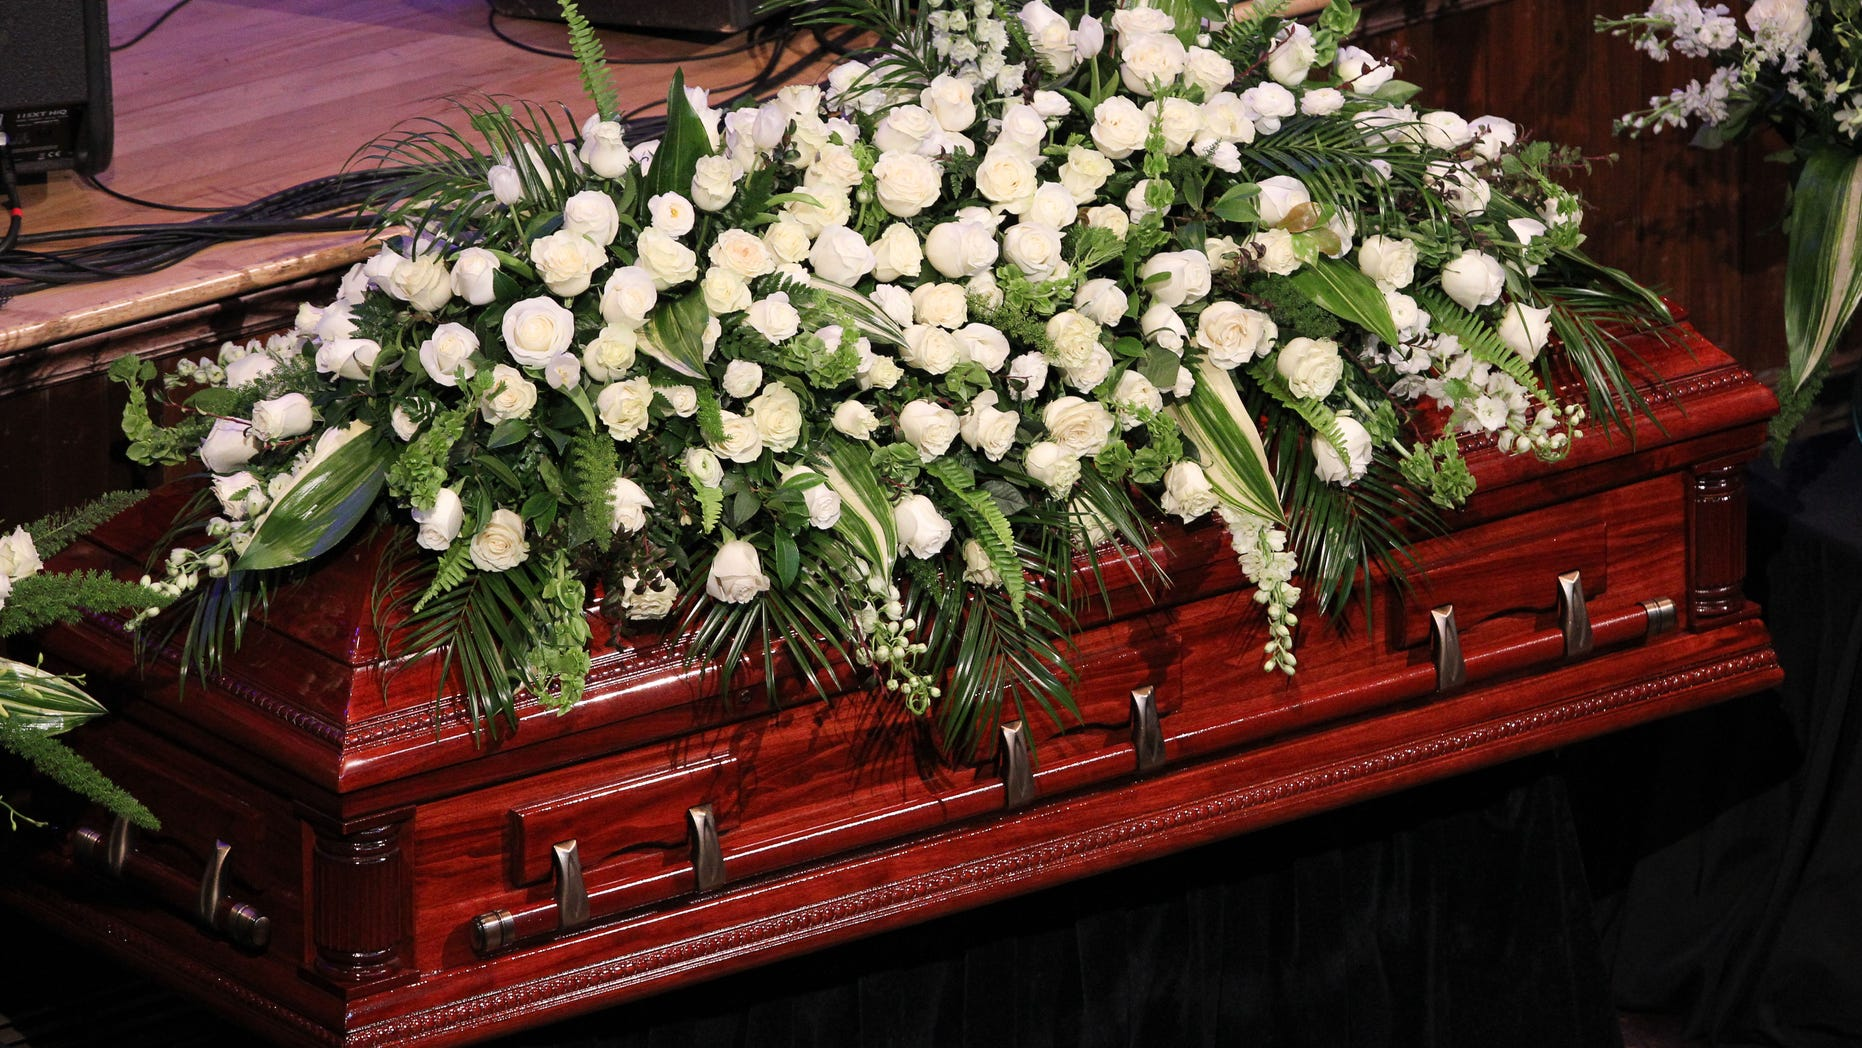 NASHVILLE, TN - JUNE 15:  A general view of the atmosphere at the Funeral of Jim Ed Brown at the Ryman Auditorium on June 15, 2015 in Nashville, Tennessee. Brown died Thursday, June 11th at Williamson Medical Center in Franklin, TN after battling cancer.  (Photo by Terry Wyatt/Getty Images)